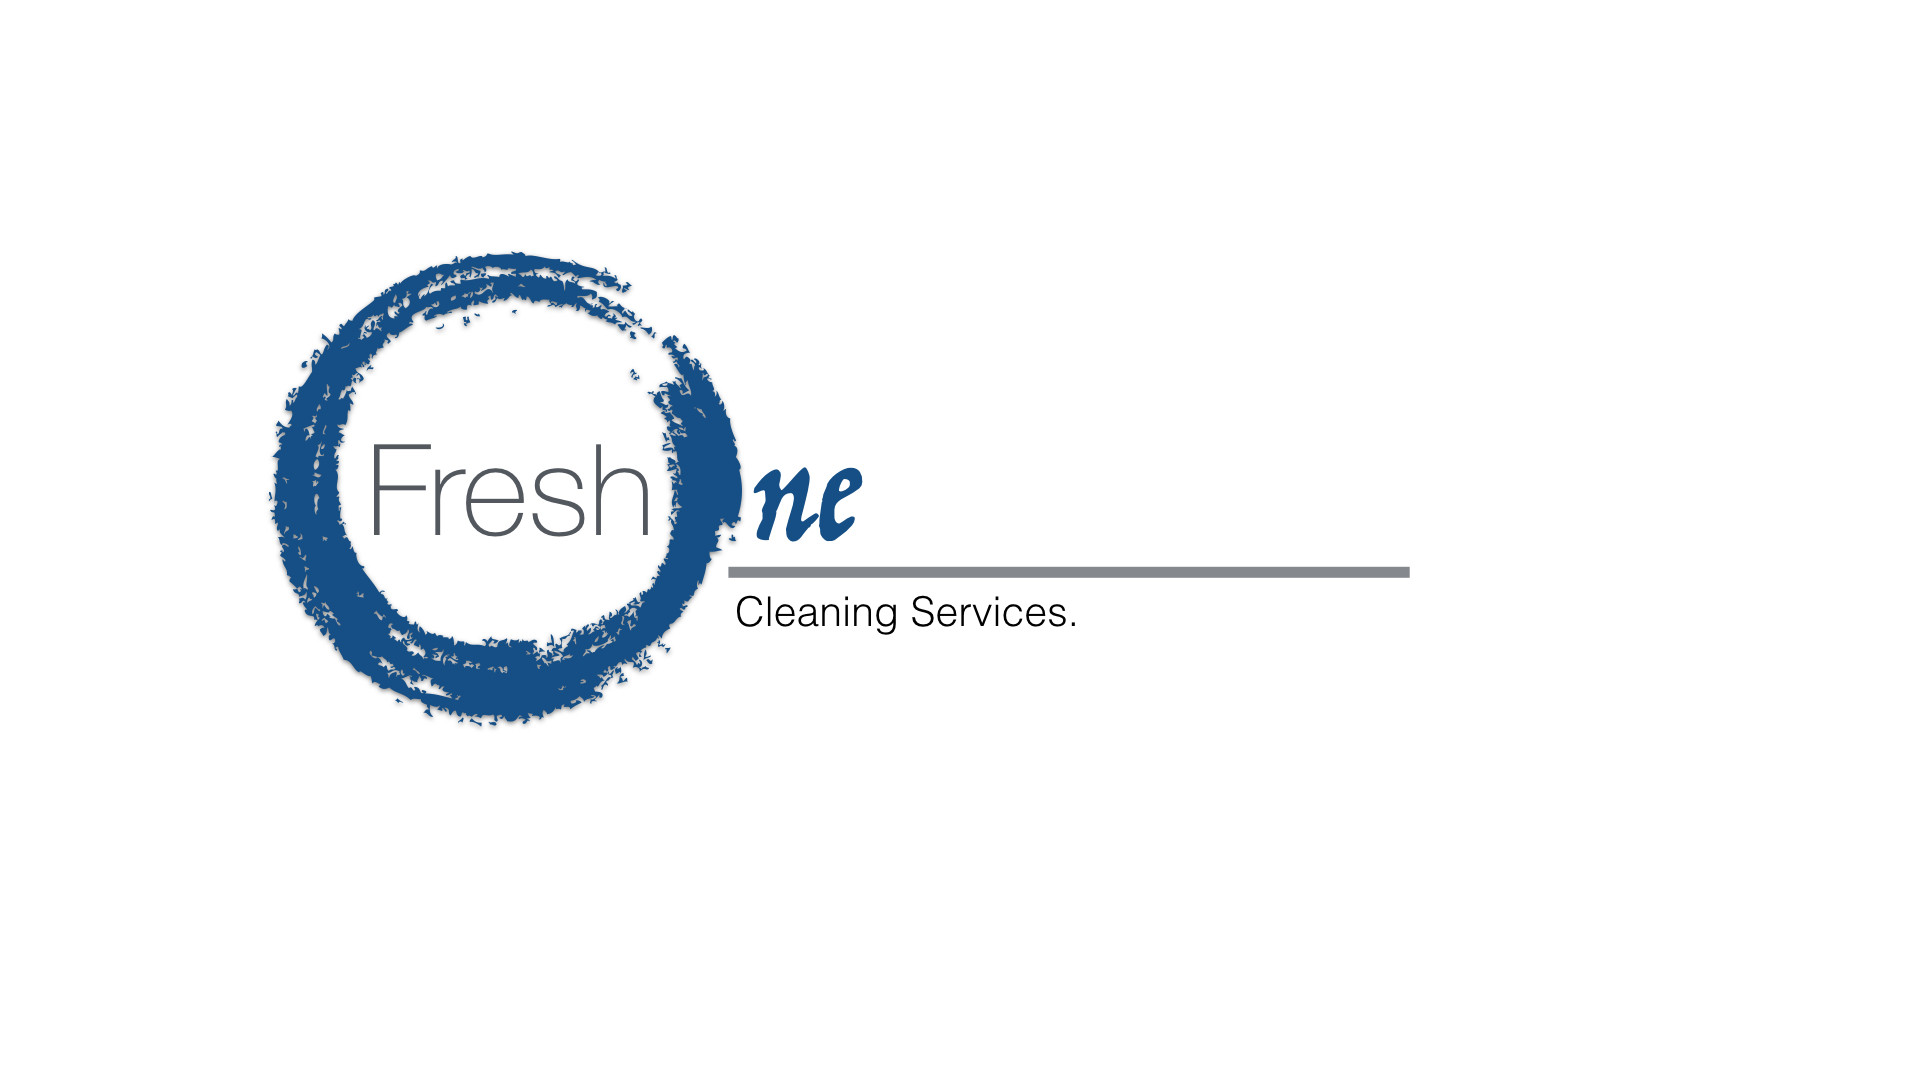 Fresh One Services